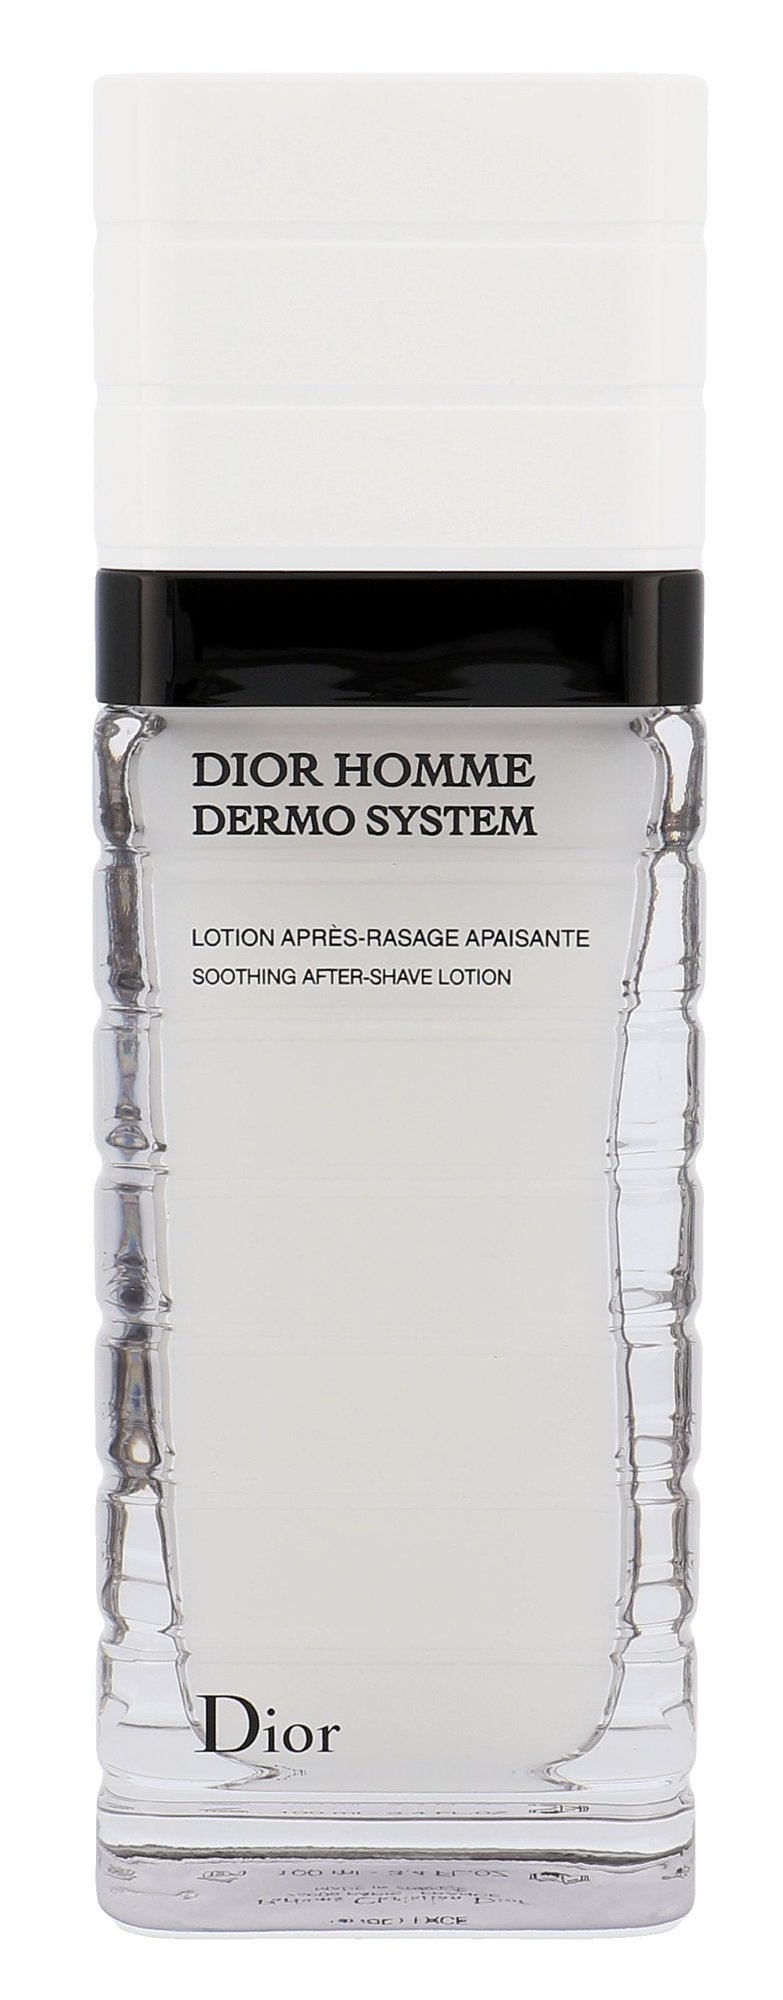 Christian Dior Homme Dermo System Cosmetic 100ml